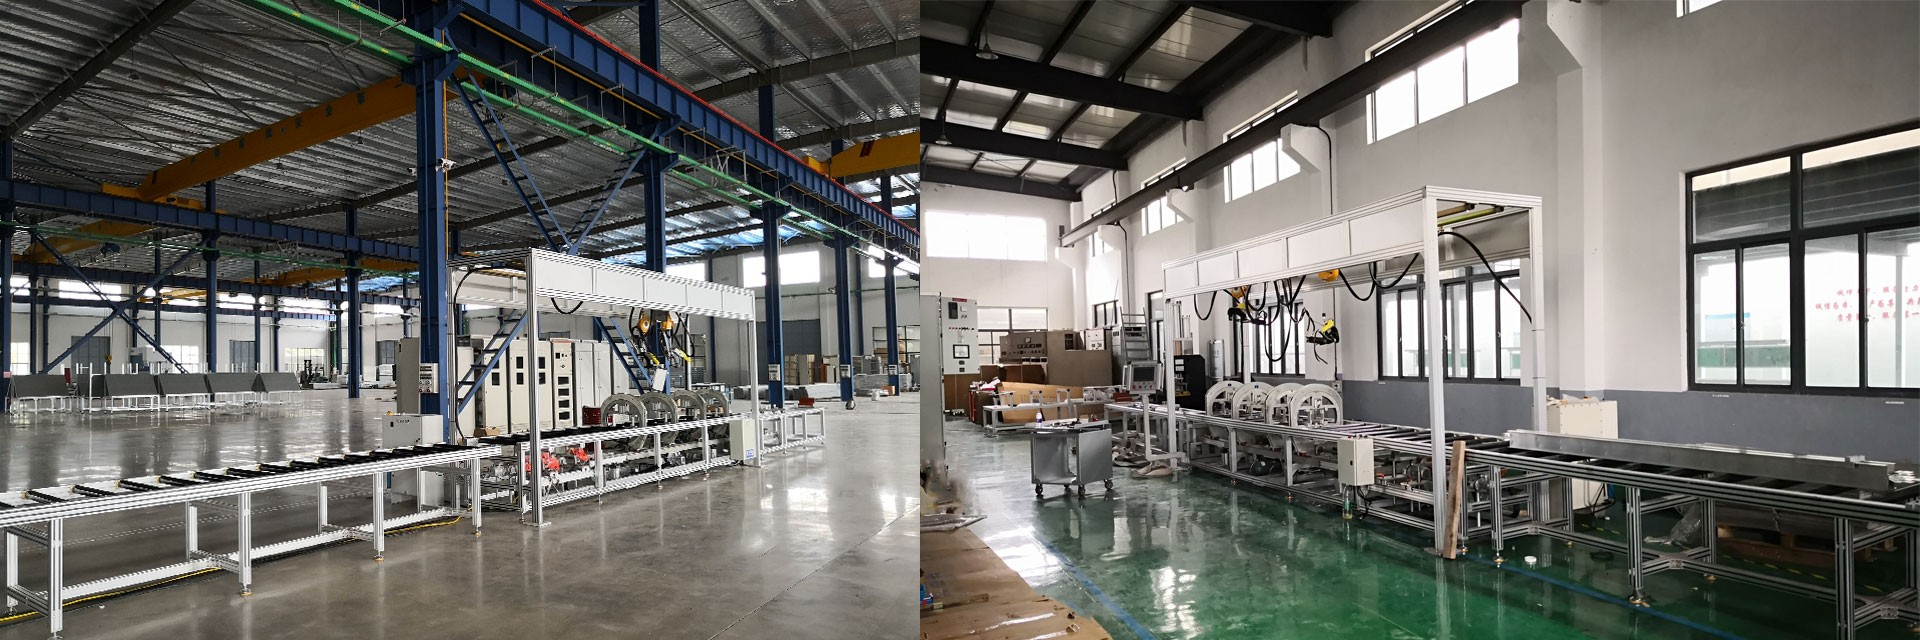 Busbar Fabrication Machine